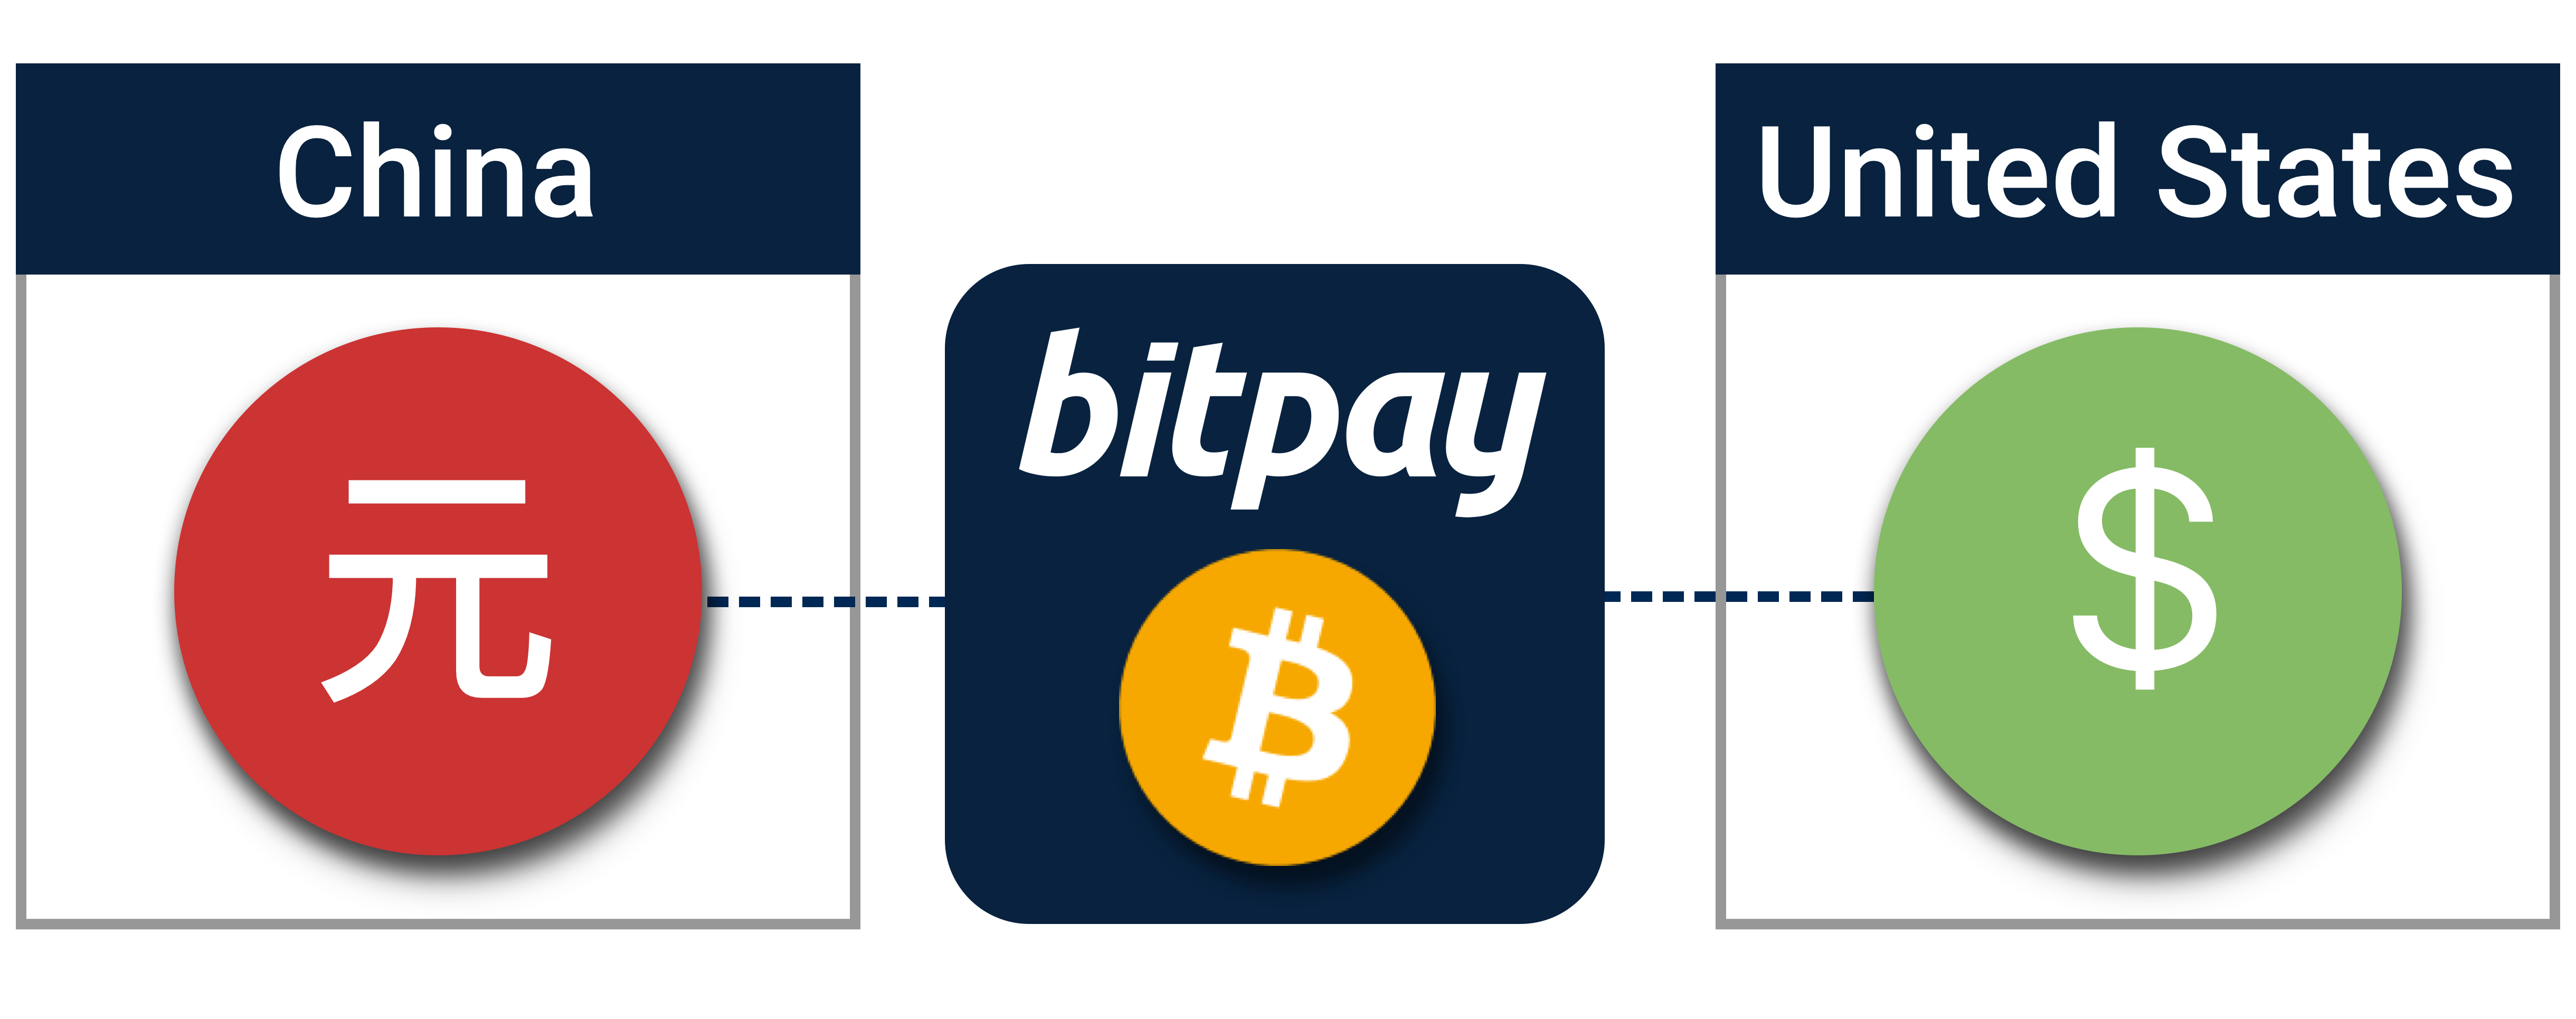 BitPay's Bitcoin Payments Volume Grows by 328%, On Pace for $1 Billion Yearly